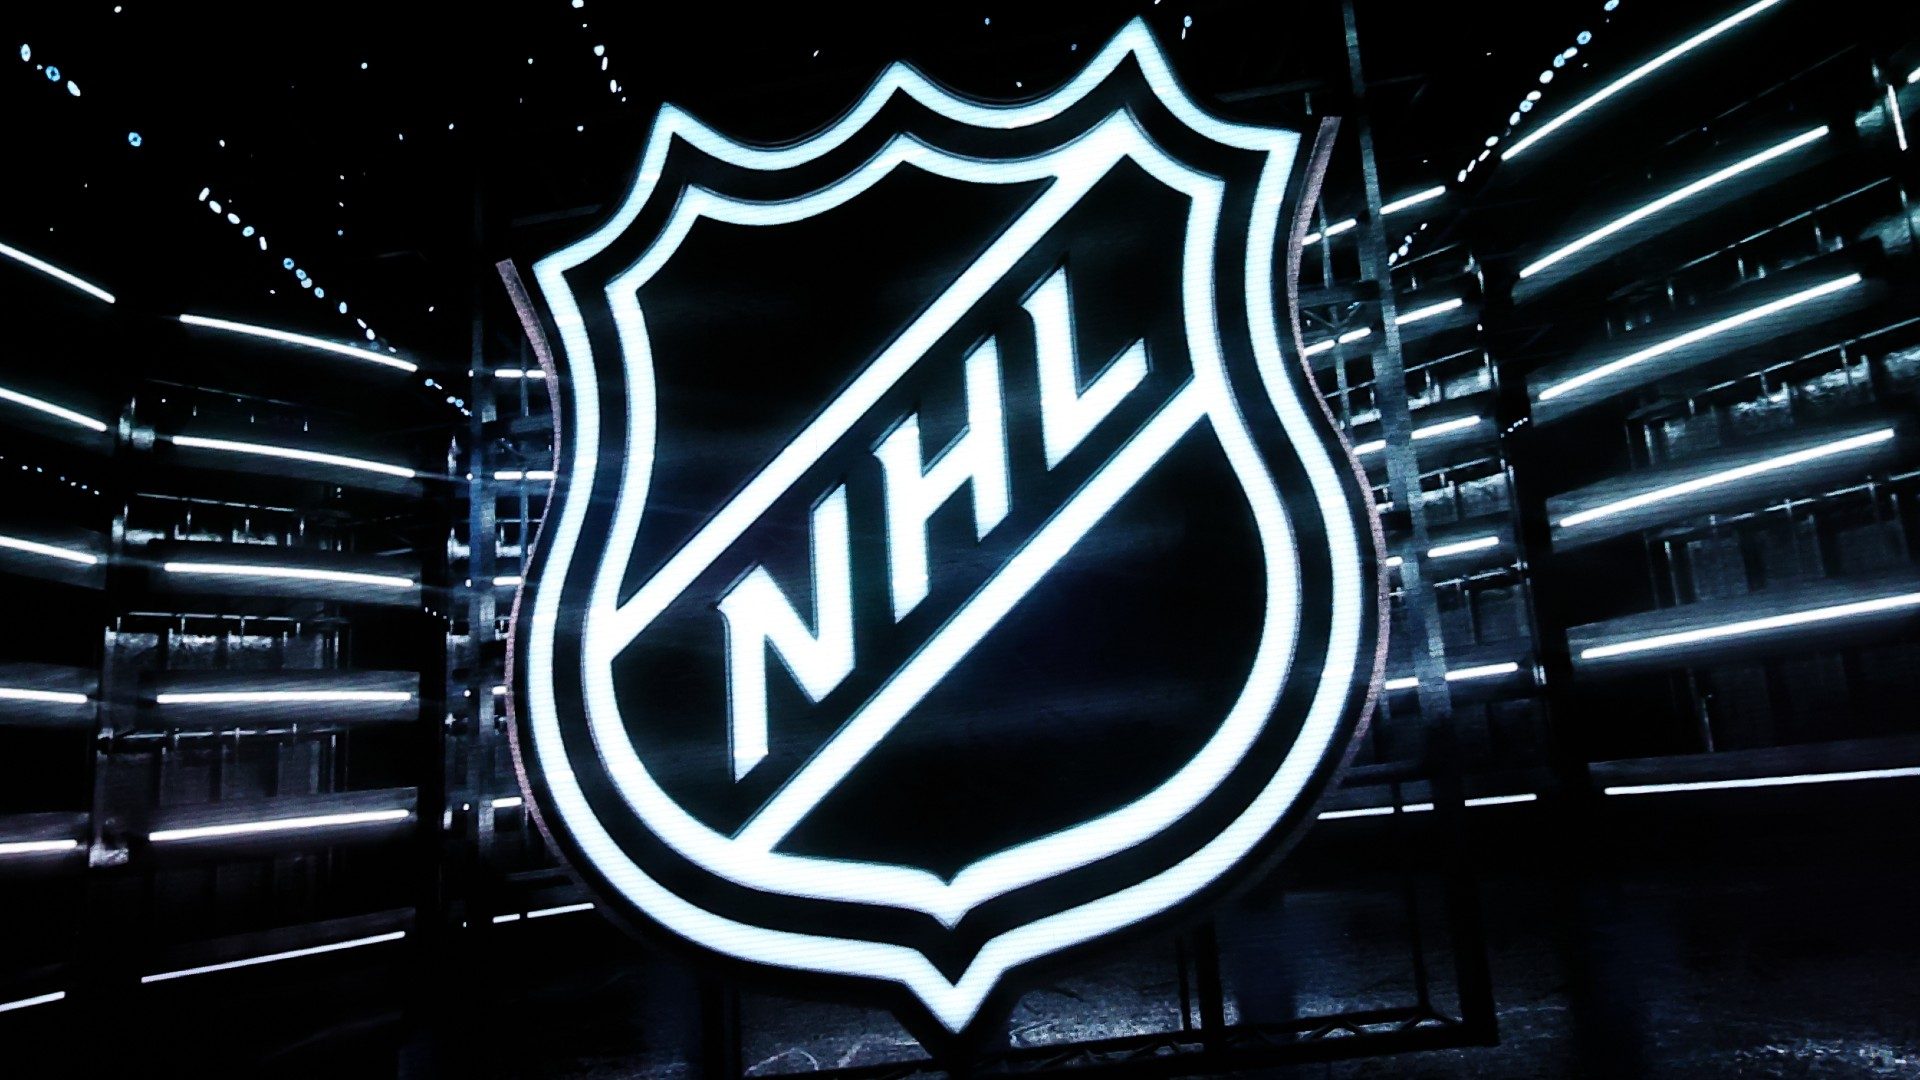 nhl logo 071521 getty ftrjpeg 8uui71nnnfyu1akcvfz2r2jso NHL trade tracker: List of deals completed during the 2021 offseason